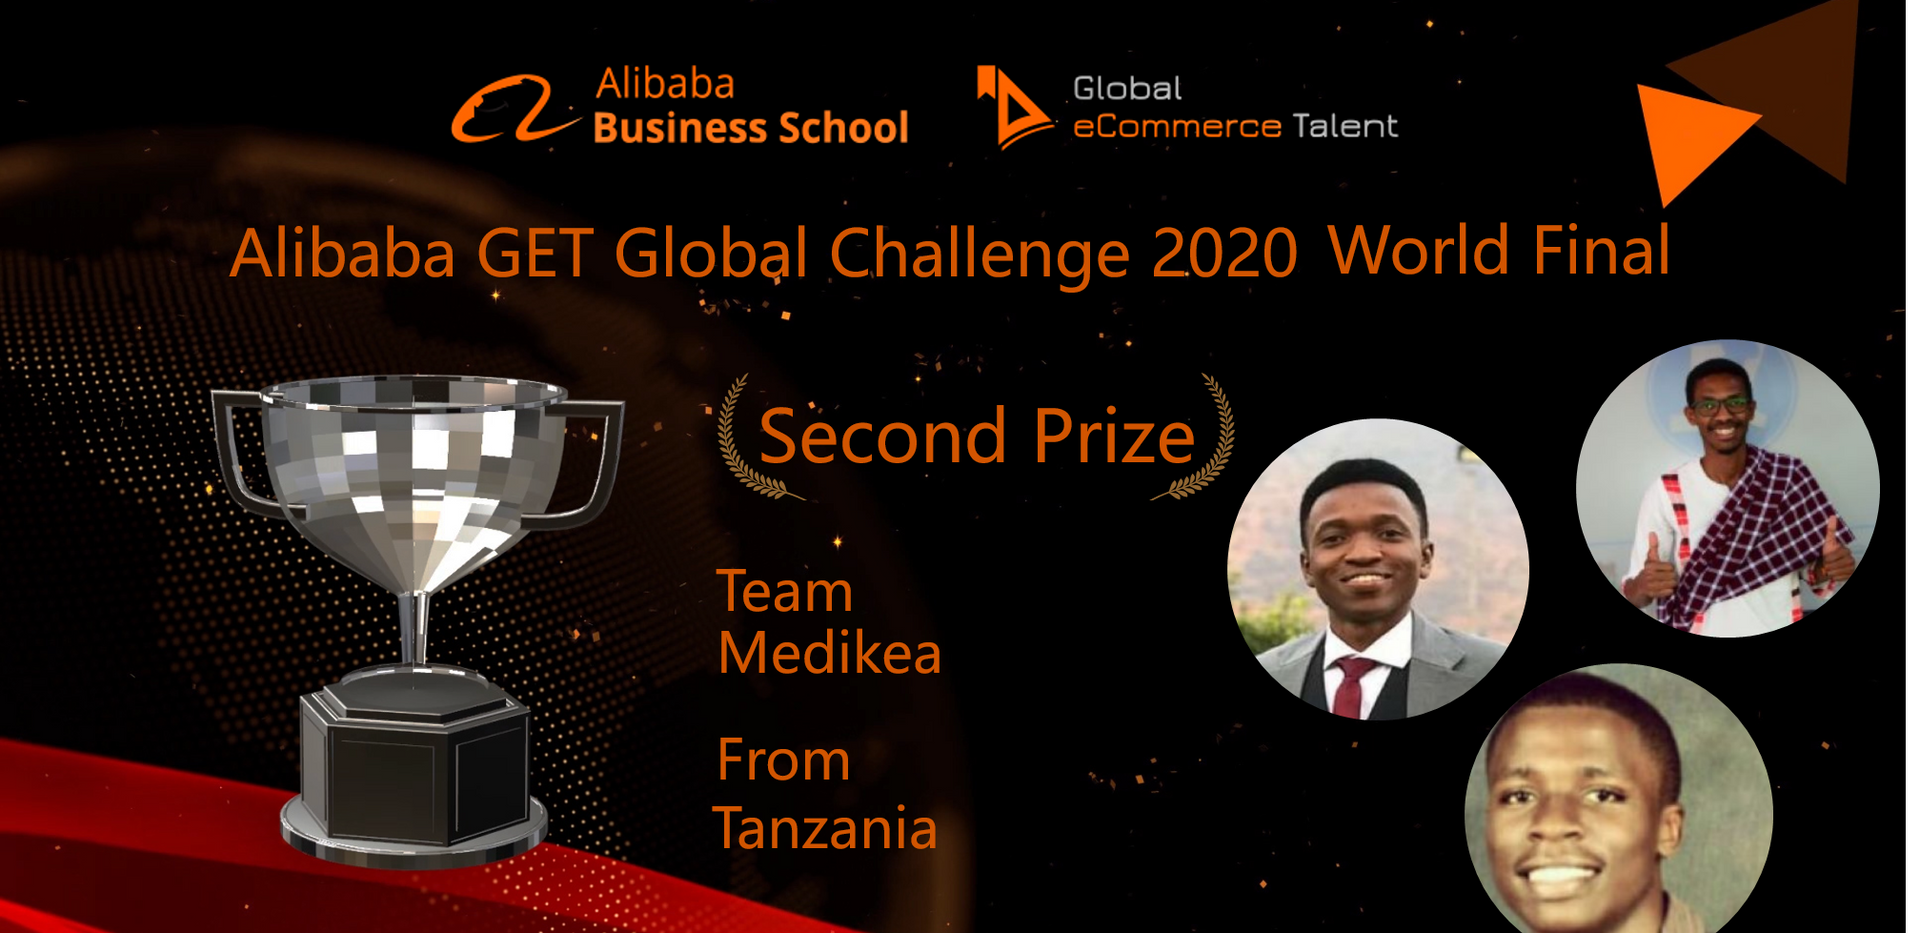 Second Prize - Africa Region